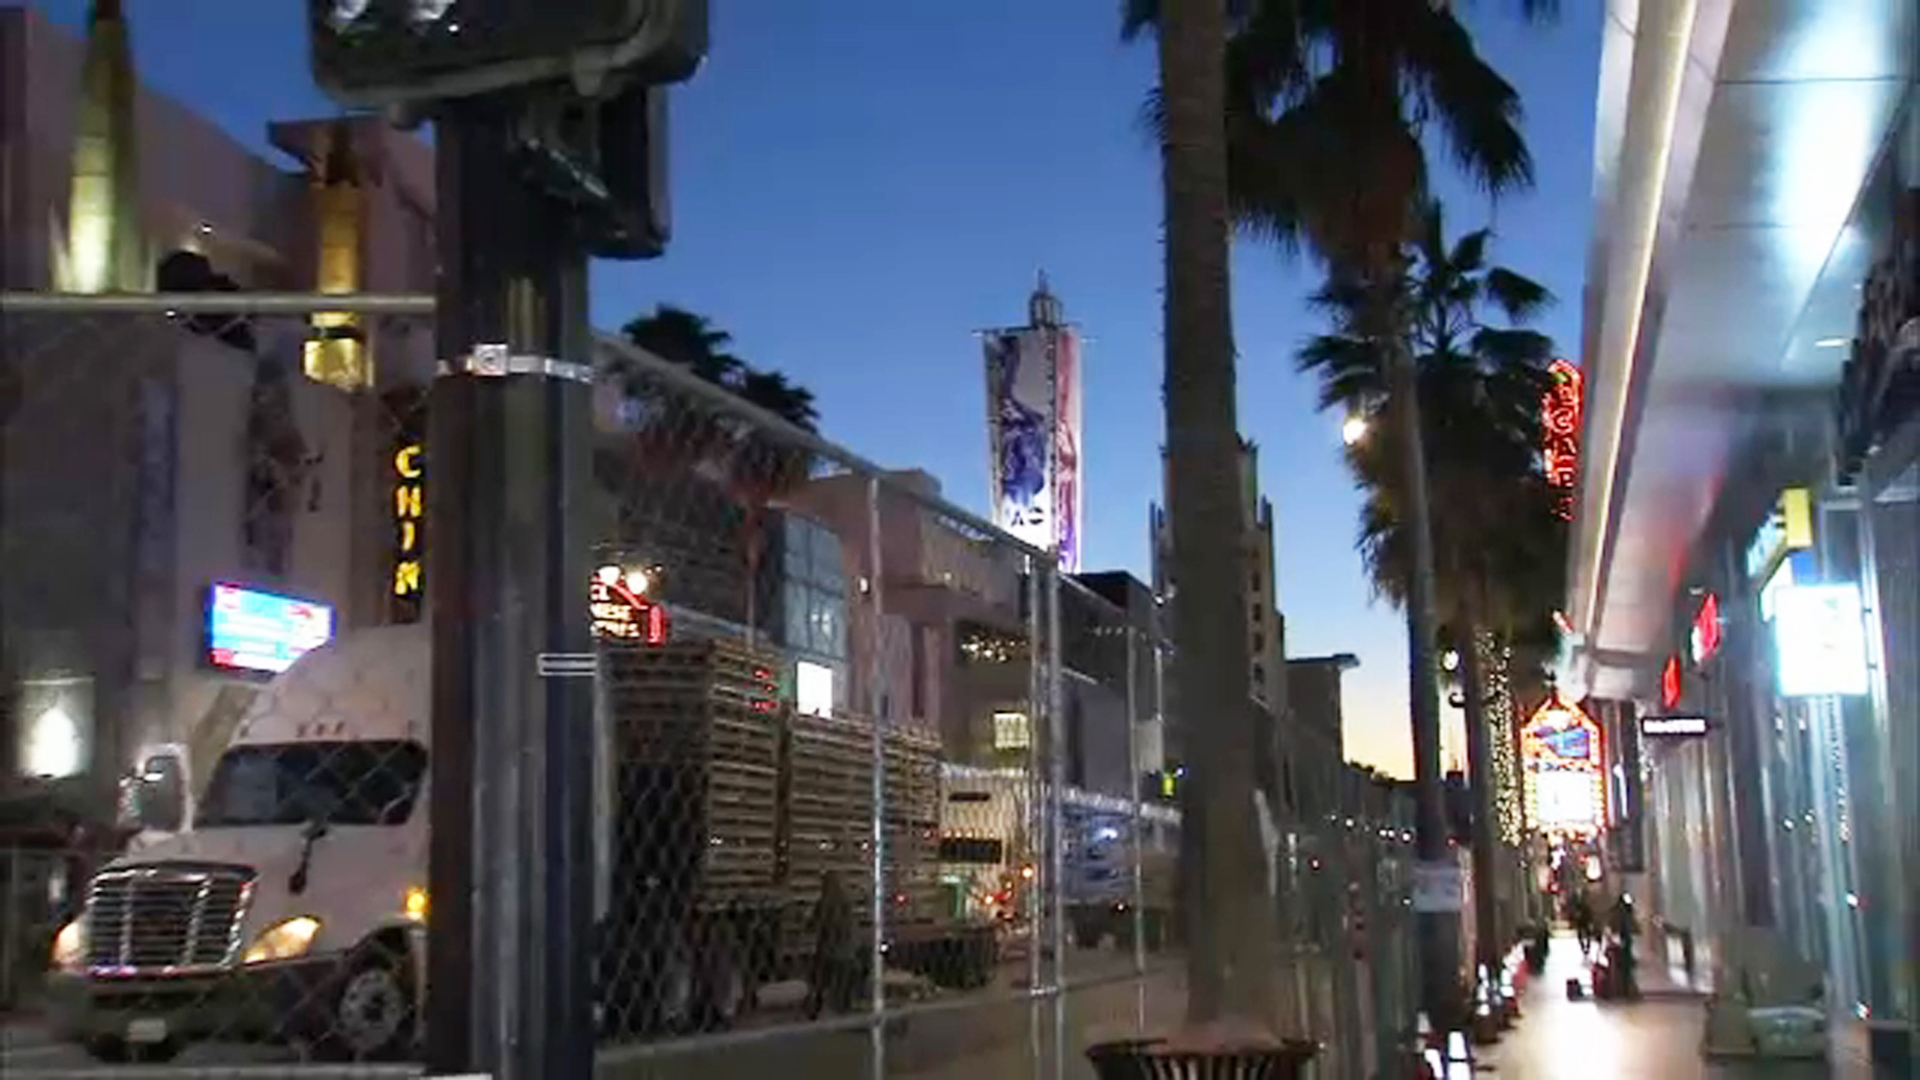 The Academy of Motion Picture Arts and Sciences and the city of Los Angeles have finalized street closure plans around the Dolby Theatre for the week of the 2019 Oscars.